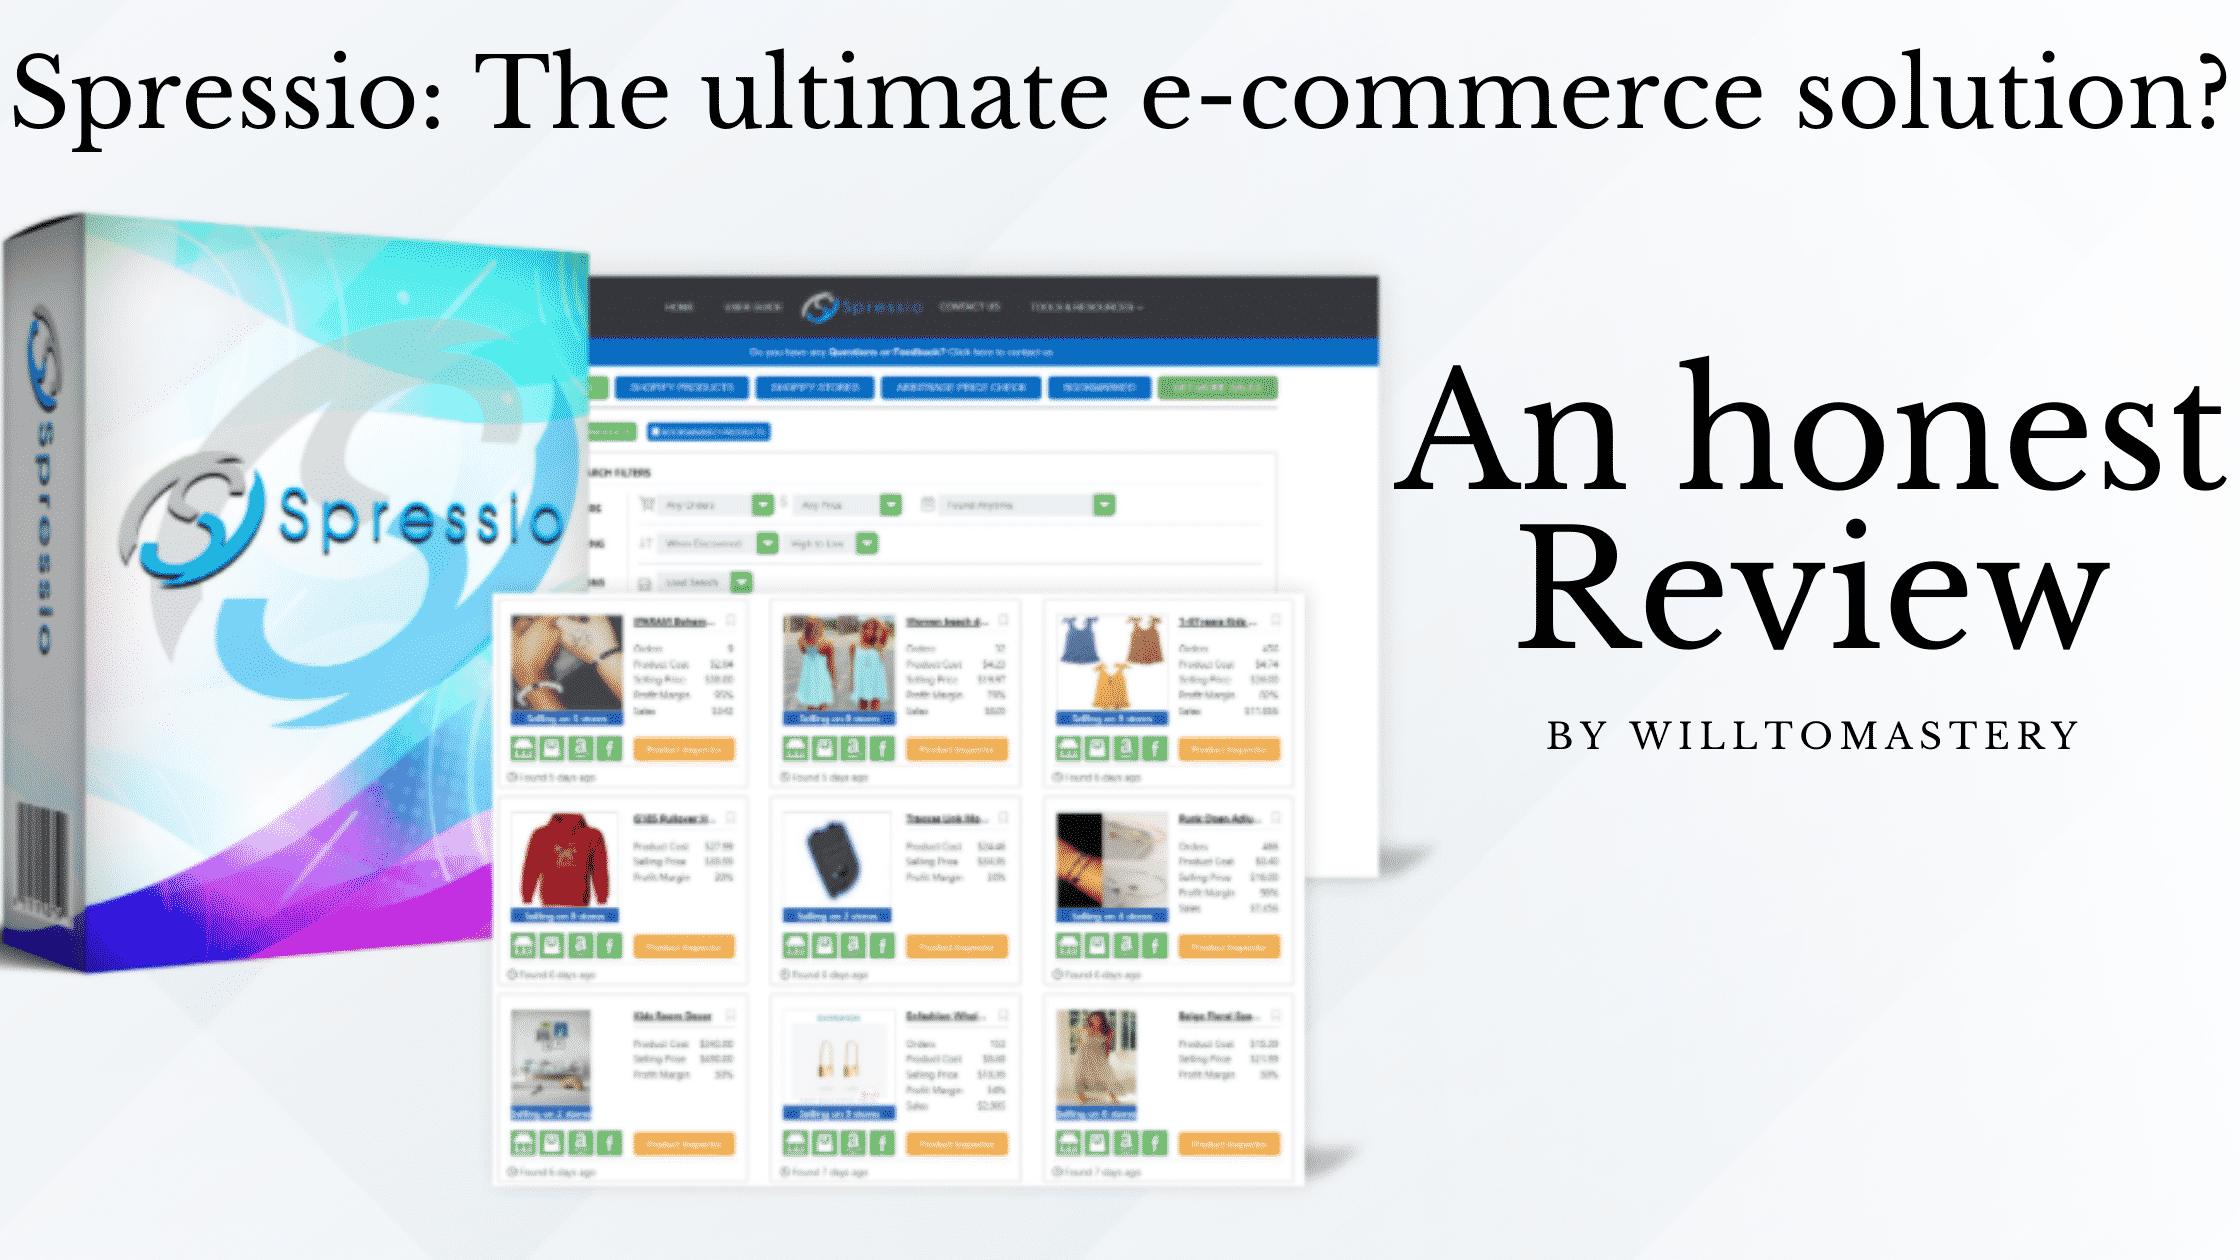 Spressio Review The Ultimate E-Commerce Solution